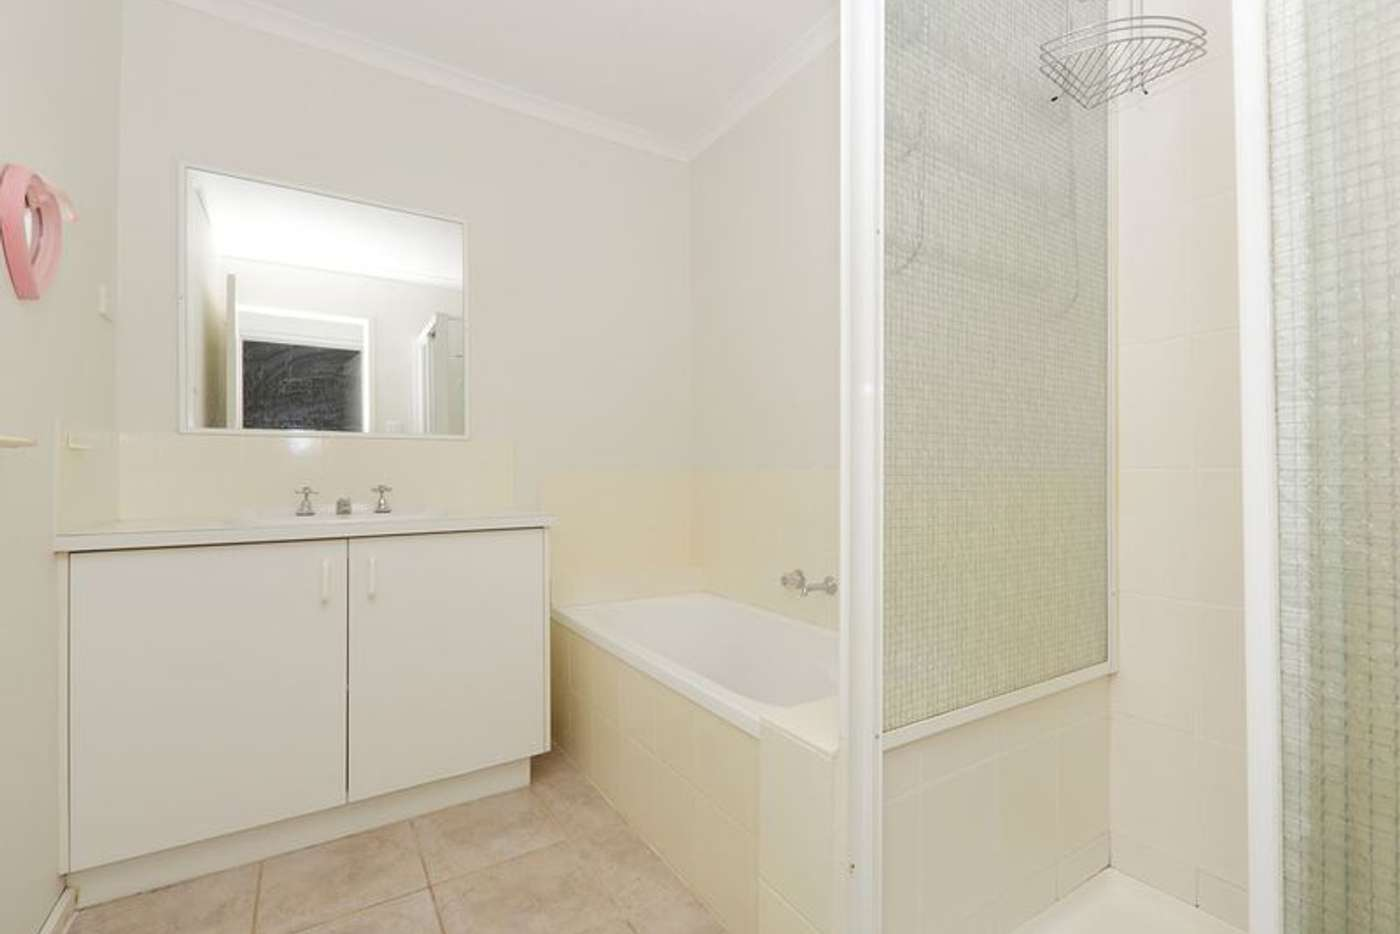 Sixth view of Homely unit listing, 1A Rylands Place, Wantirna VIC 3152